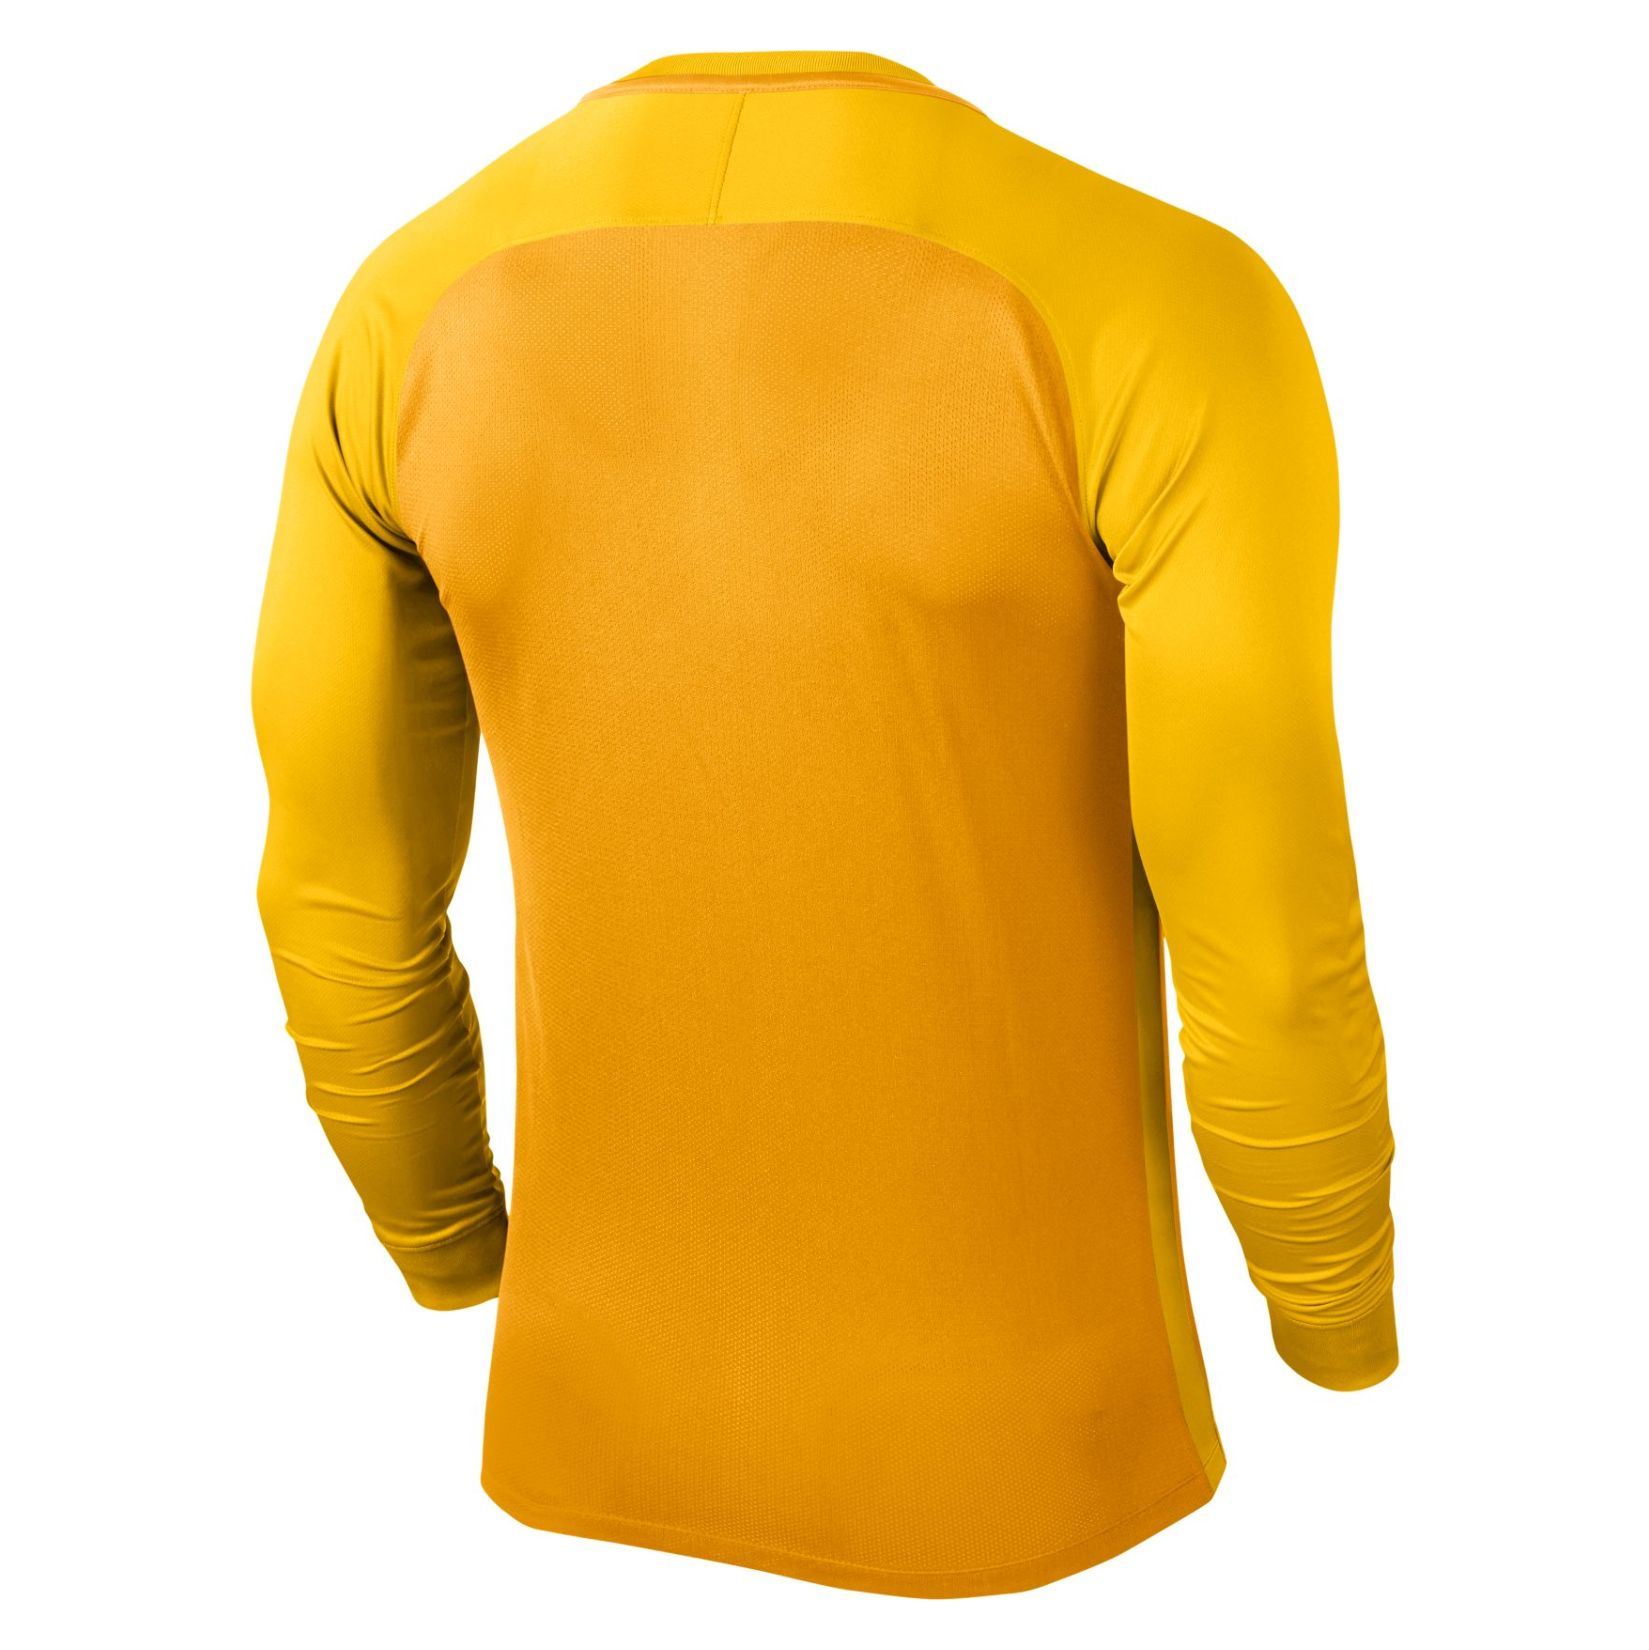 Nike Trophy III Long Sleeve Football Jersey University Gold-Tour Yellow-Tour Yellow-Black